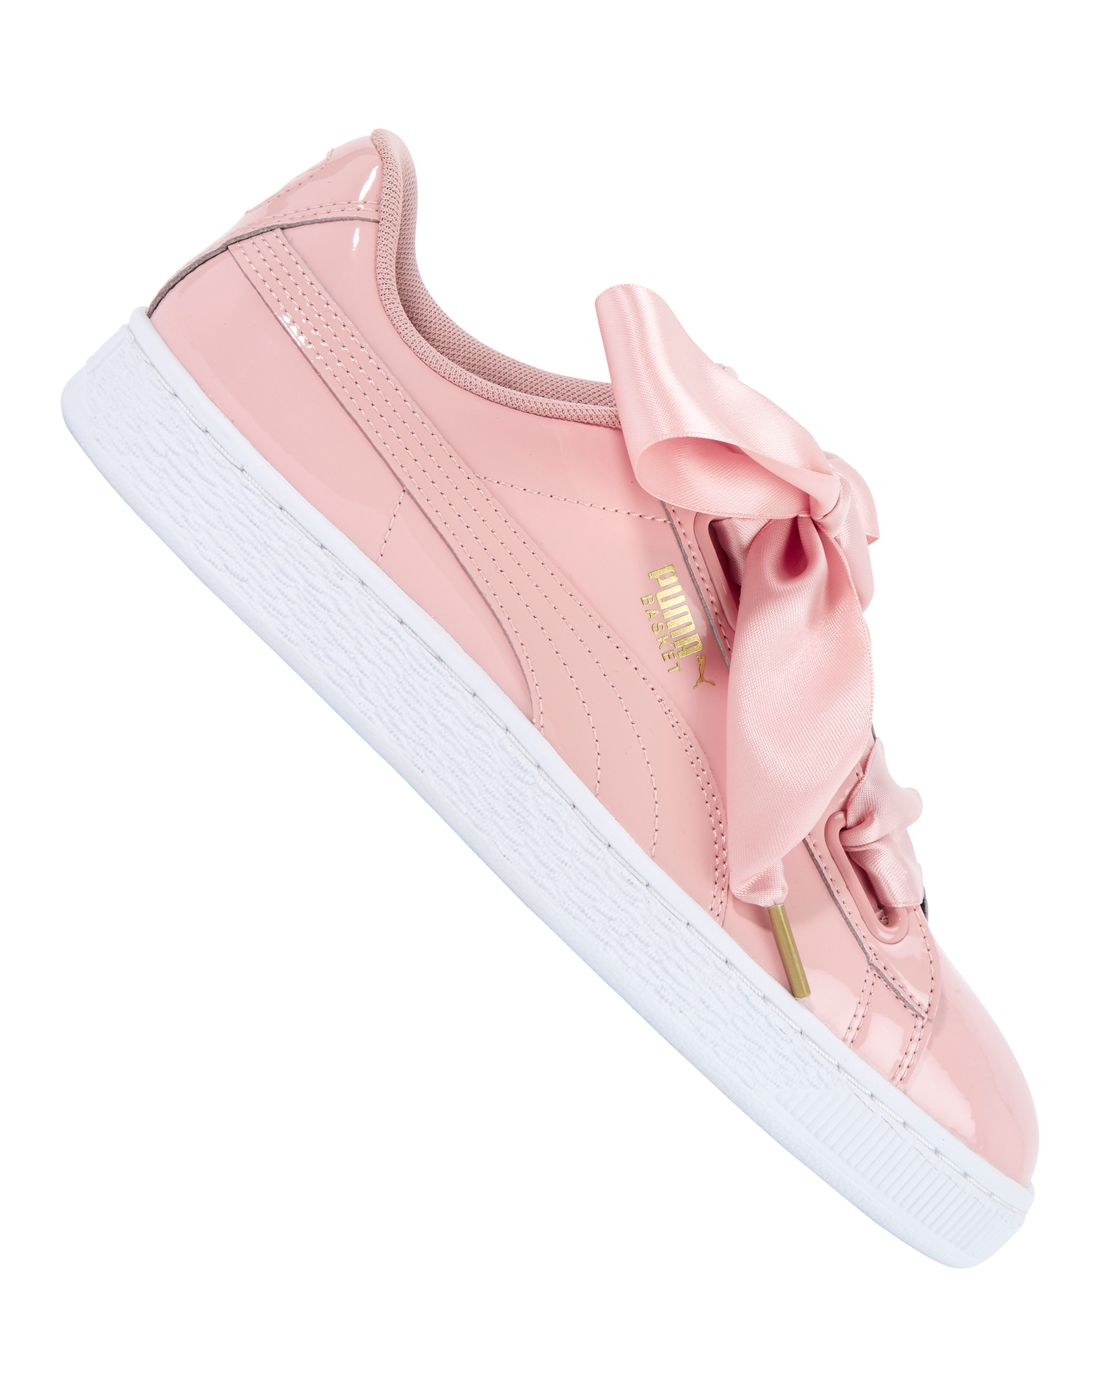 b3252ee6375 PUMA Basket Heart PatentThe original PUMA Basket trainers marked a new era  on the court before